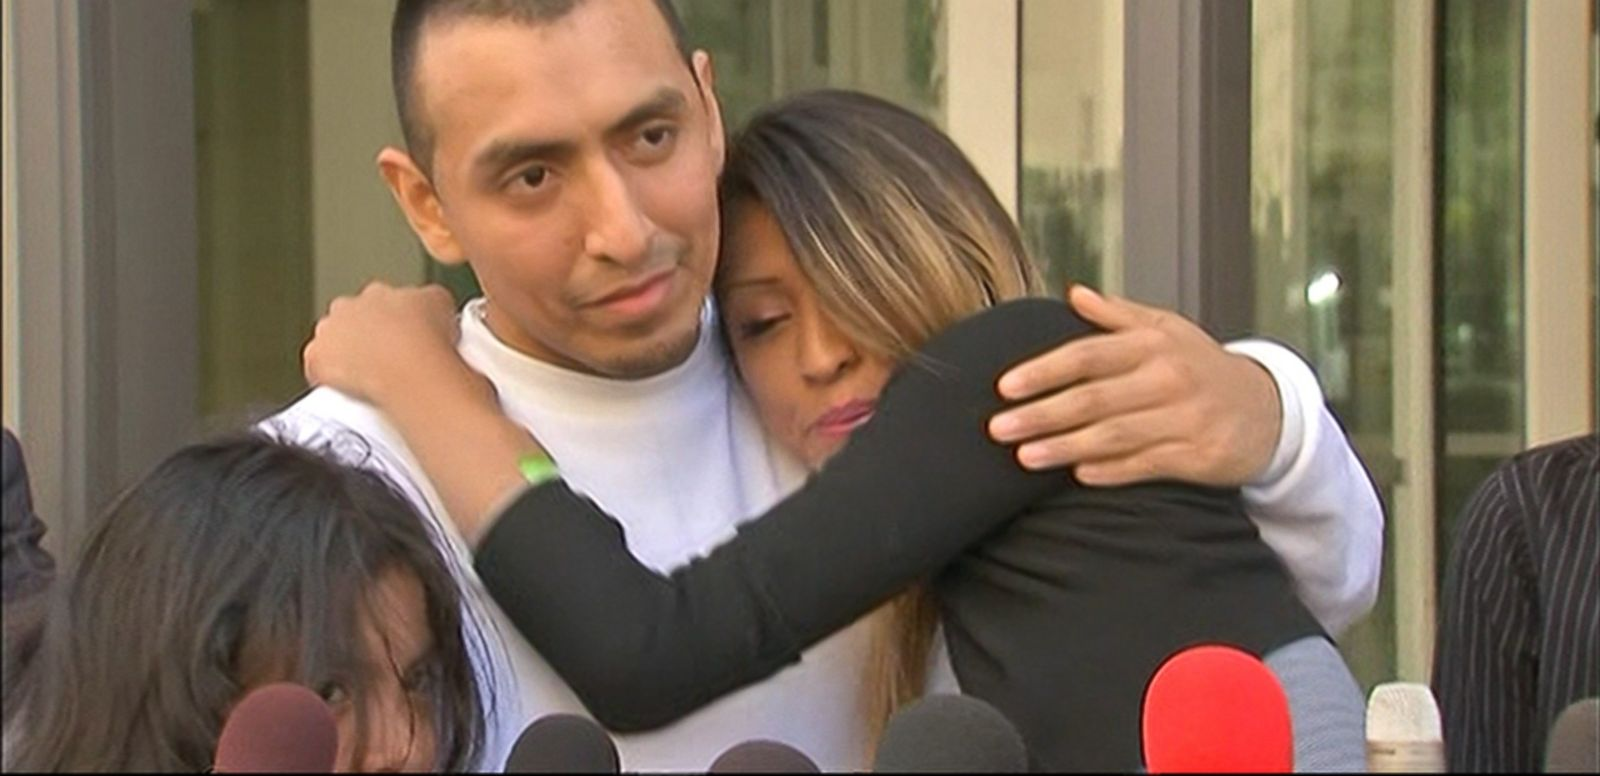 VIDEO: Argenis Longoria was scheduled for deportation to Mexico after being imprisoned on a burglary conviction.